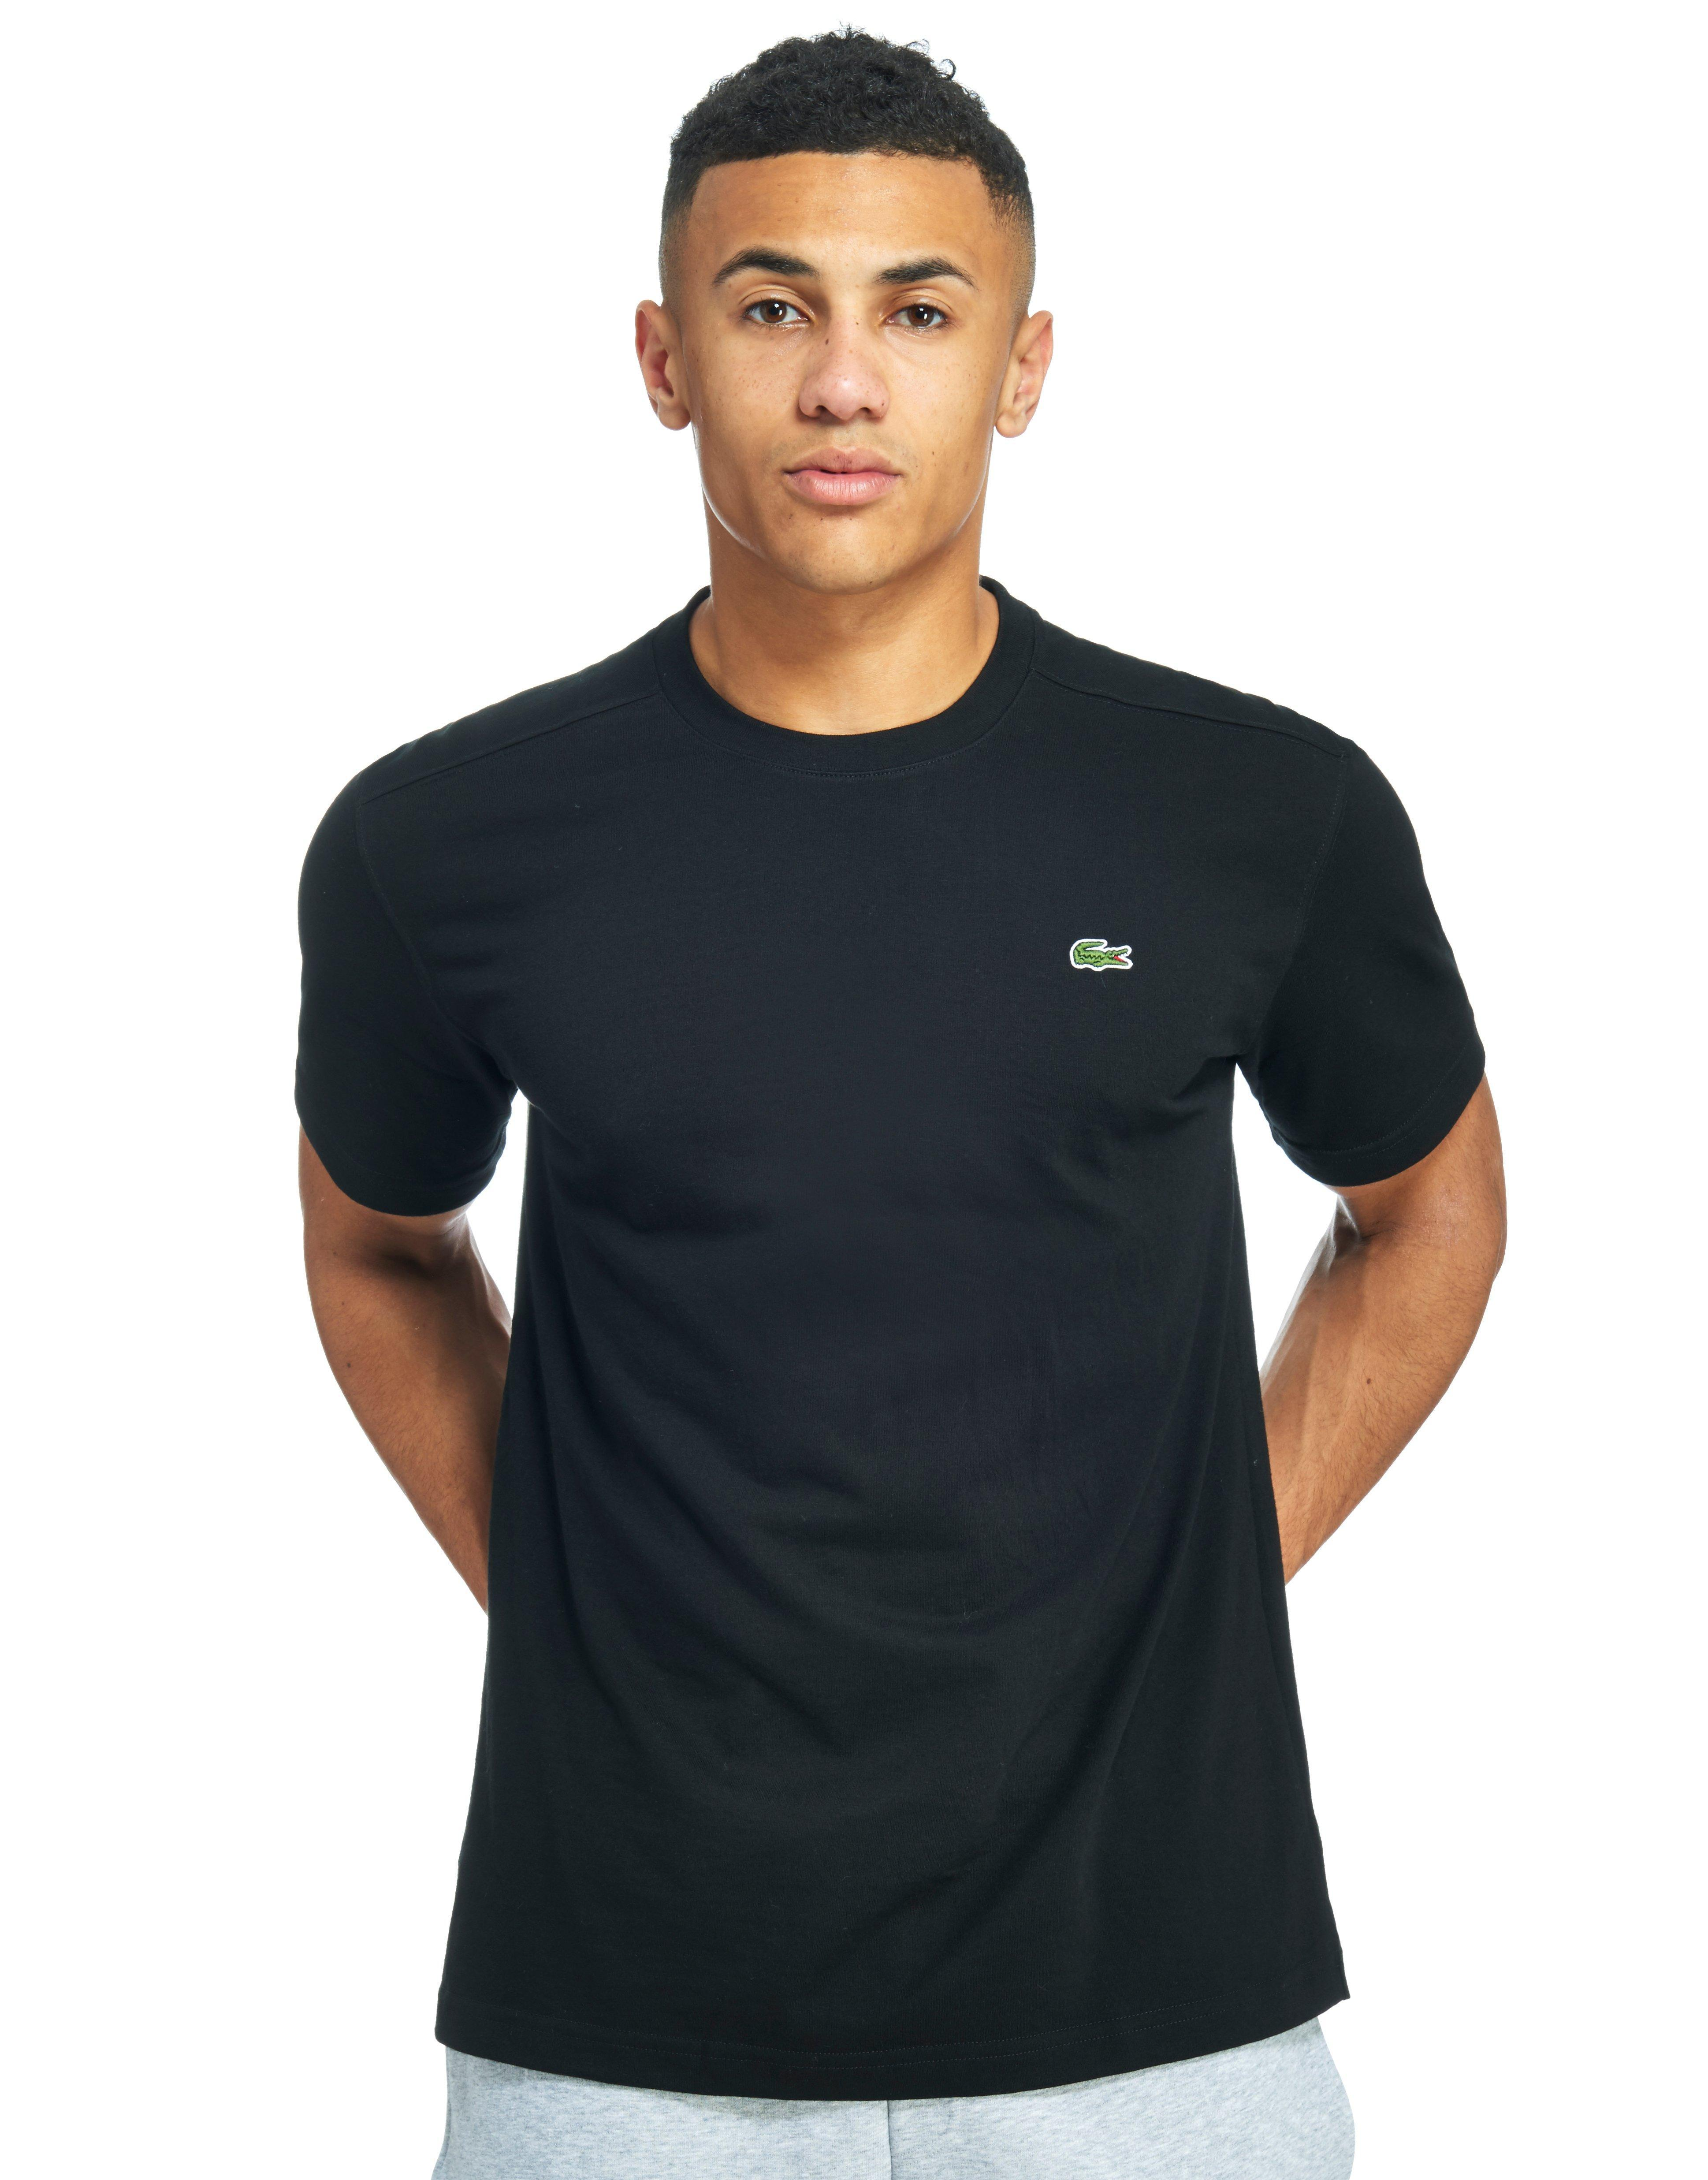 lacoste short sleeve croc t shirt in black for men lyst. Black Bedroom Furniture Sets. Home Design Ideas